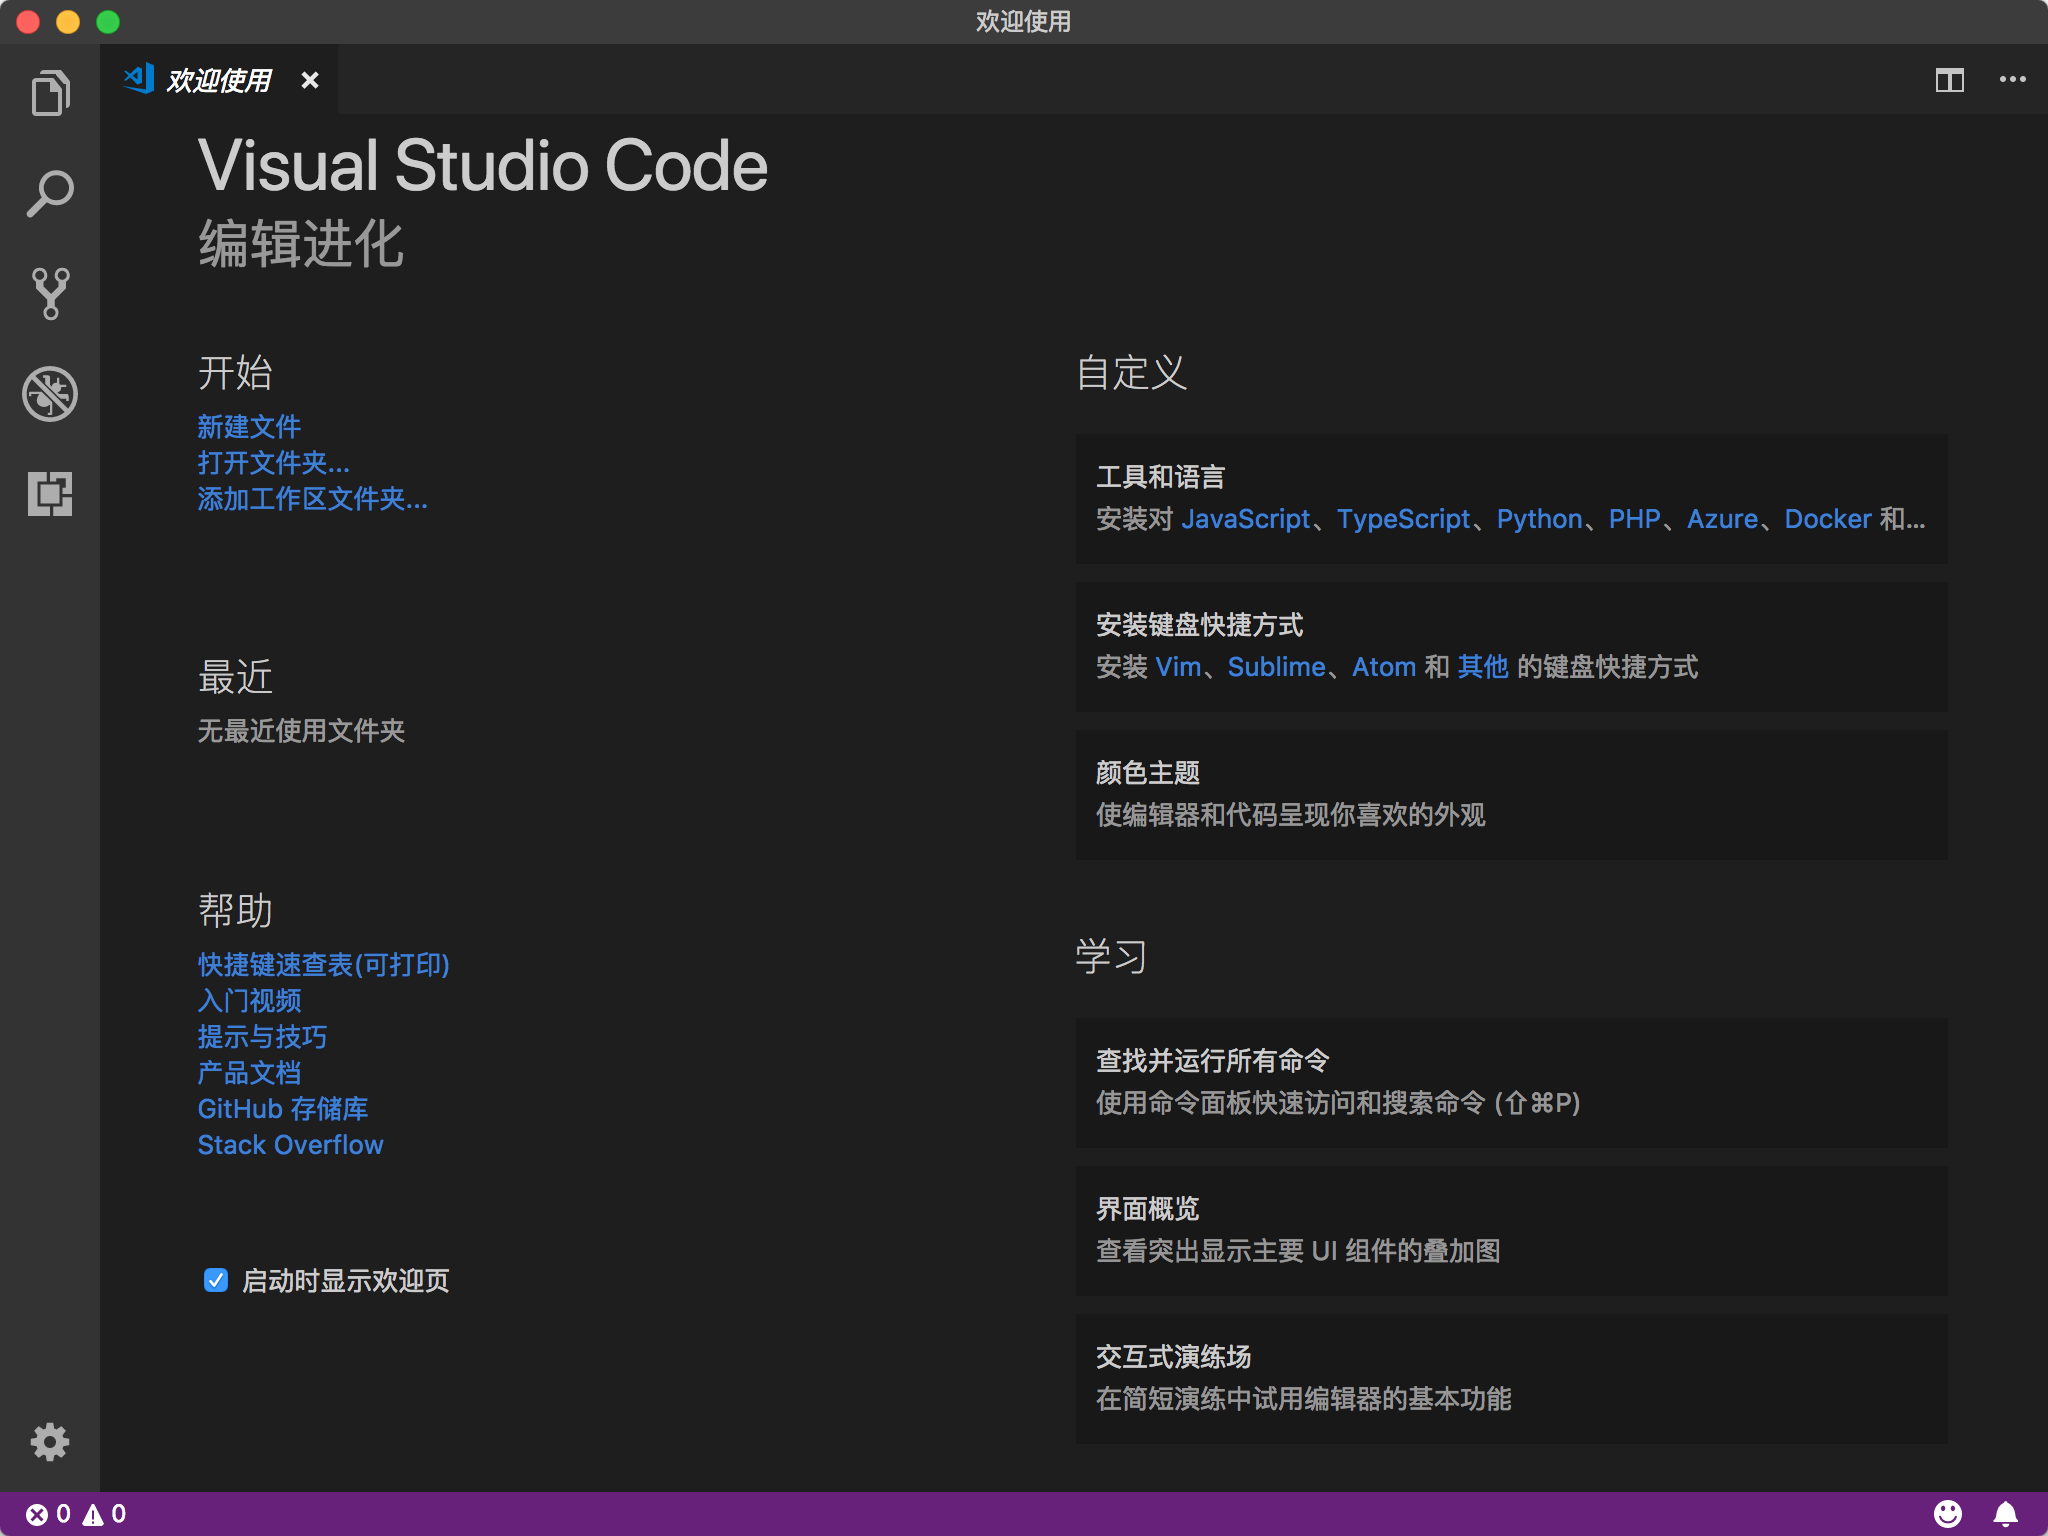 MAC下载使用Visual Studio Code (VS Code)